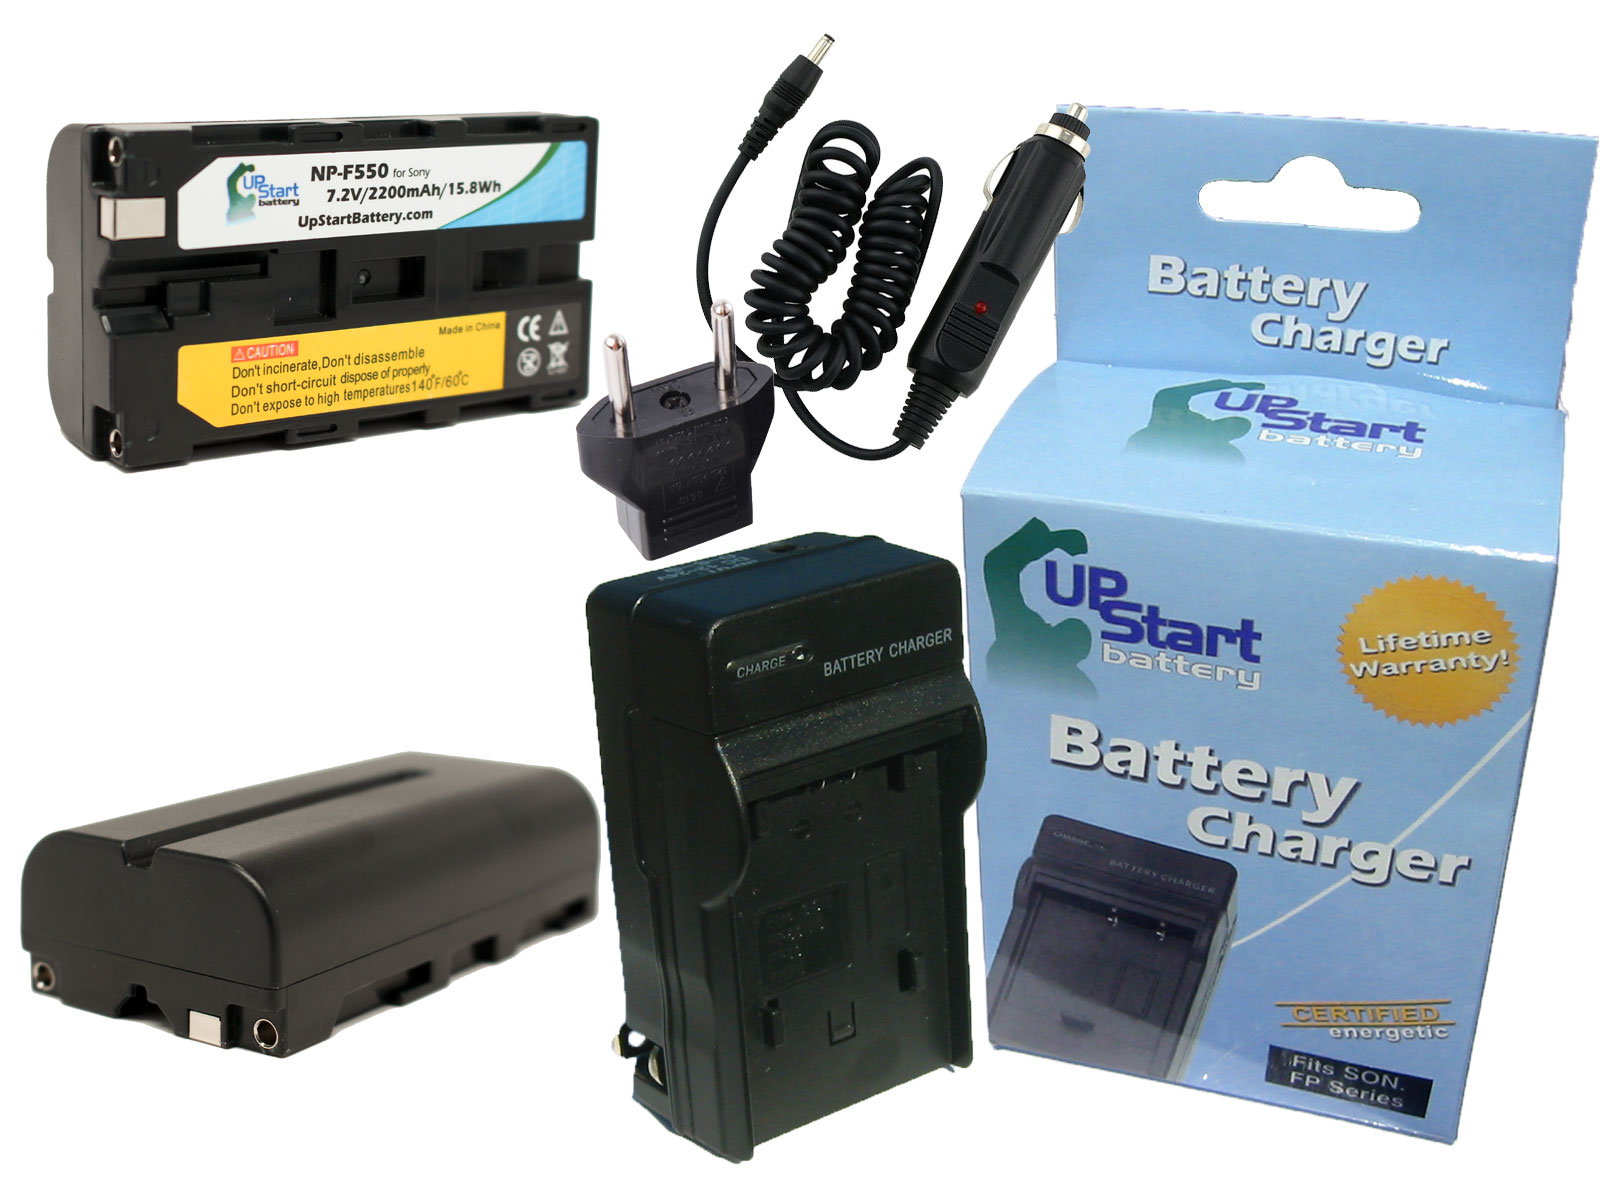 Replacement for Sony CCD-TRV65 Battery and Charger 2200mAh 7.2V Lithium-Ion Compatible with Sony NP-F550 Digital Camera Batteries and Chargers